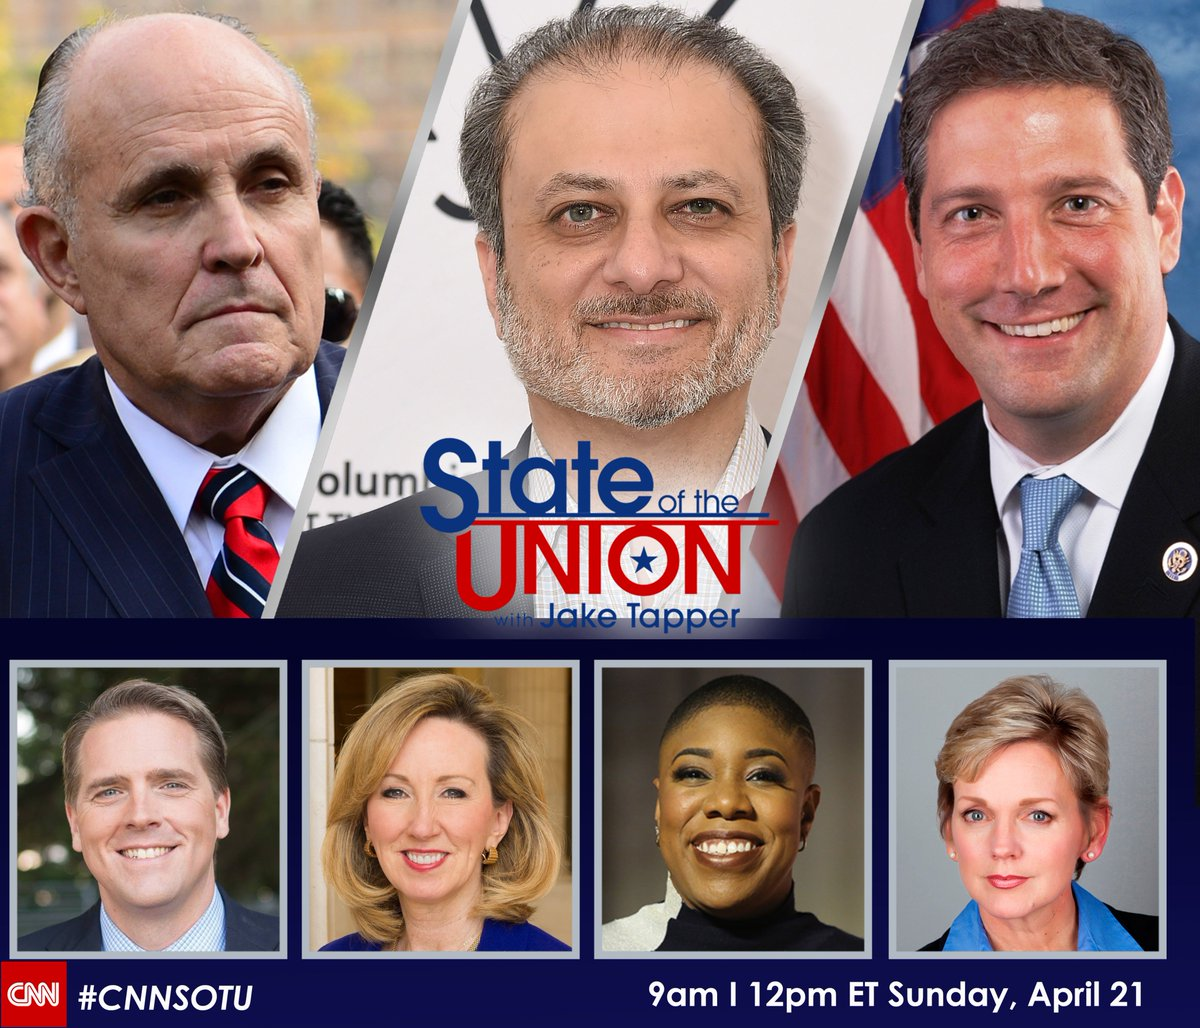 Coming up on #CNNSOTU w/ @JakeTapper at 12p ET & 9a PT: @NicRobertsonCNN, @RudyGiuliani, @PreetBharara, @TimRyan, @JenGranholm, @SymoneDSanders, @ScottJenningsKY, & @BarbaraComstock. Hope you join us!